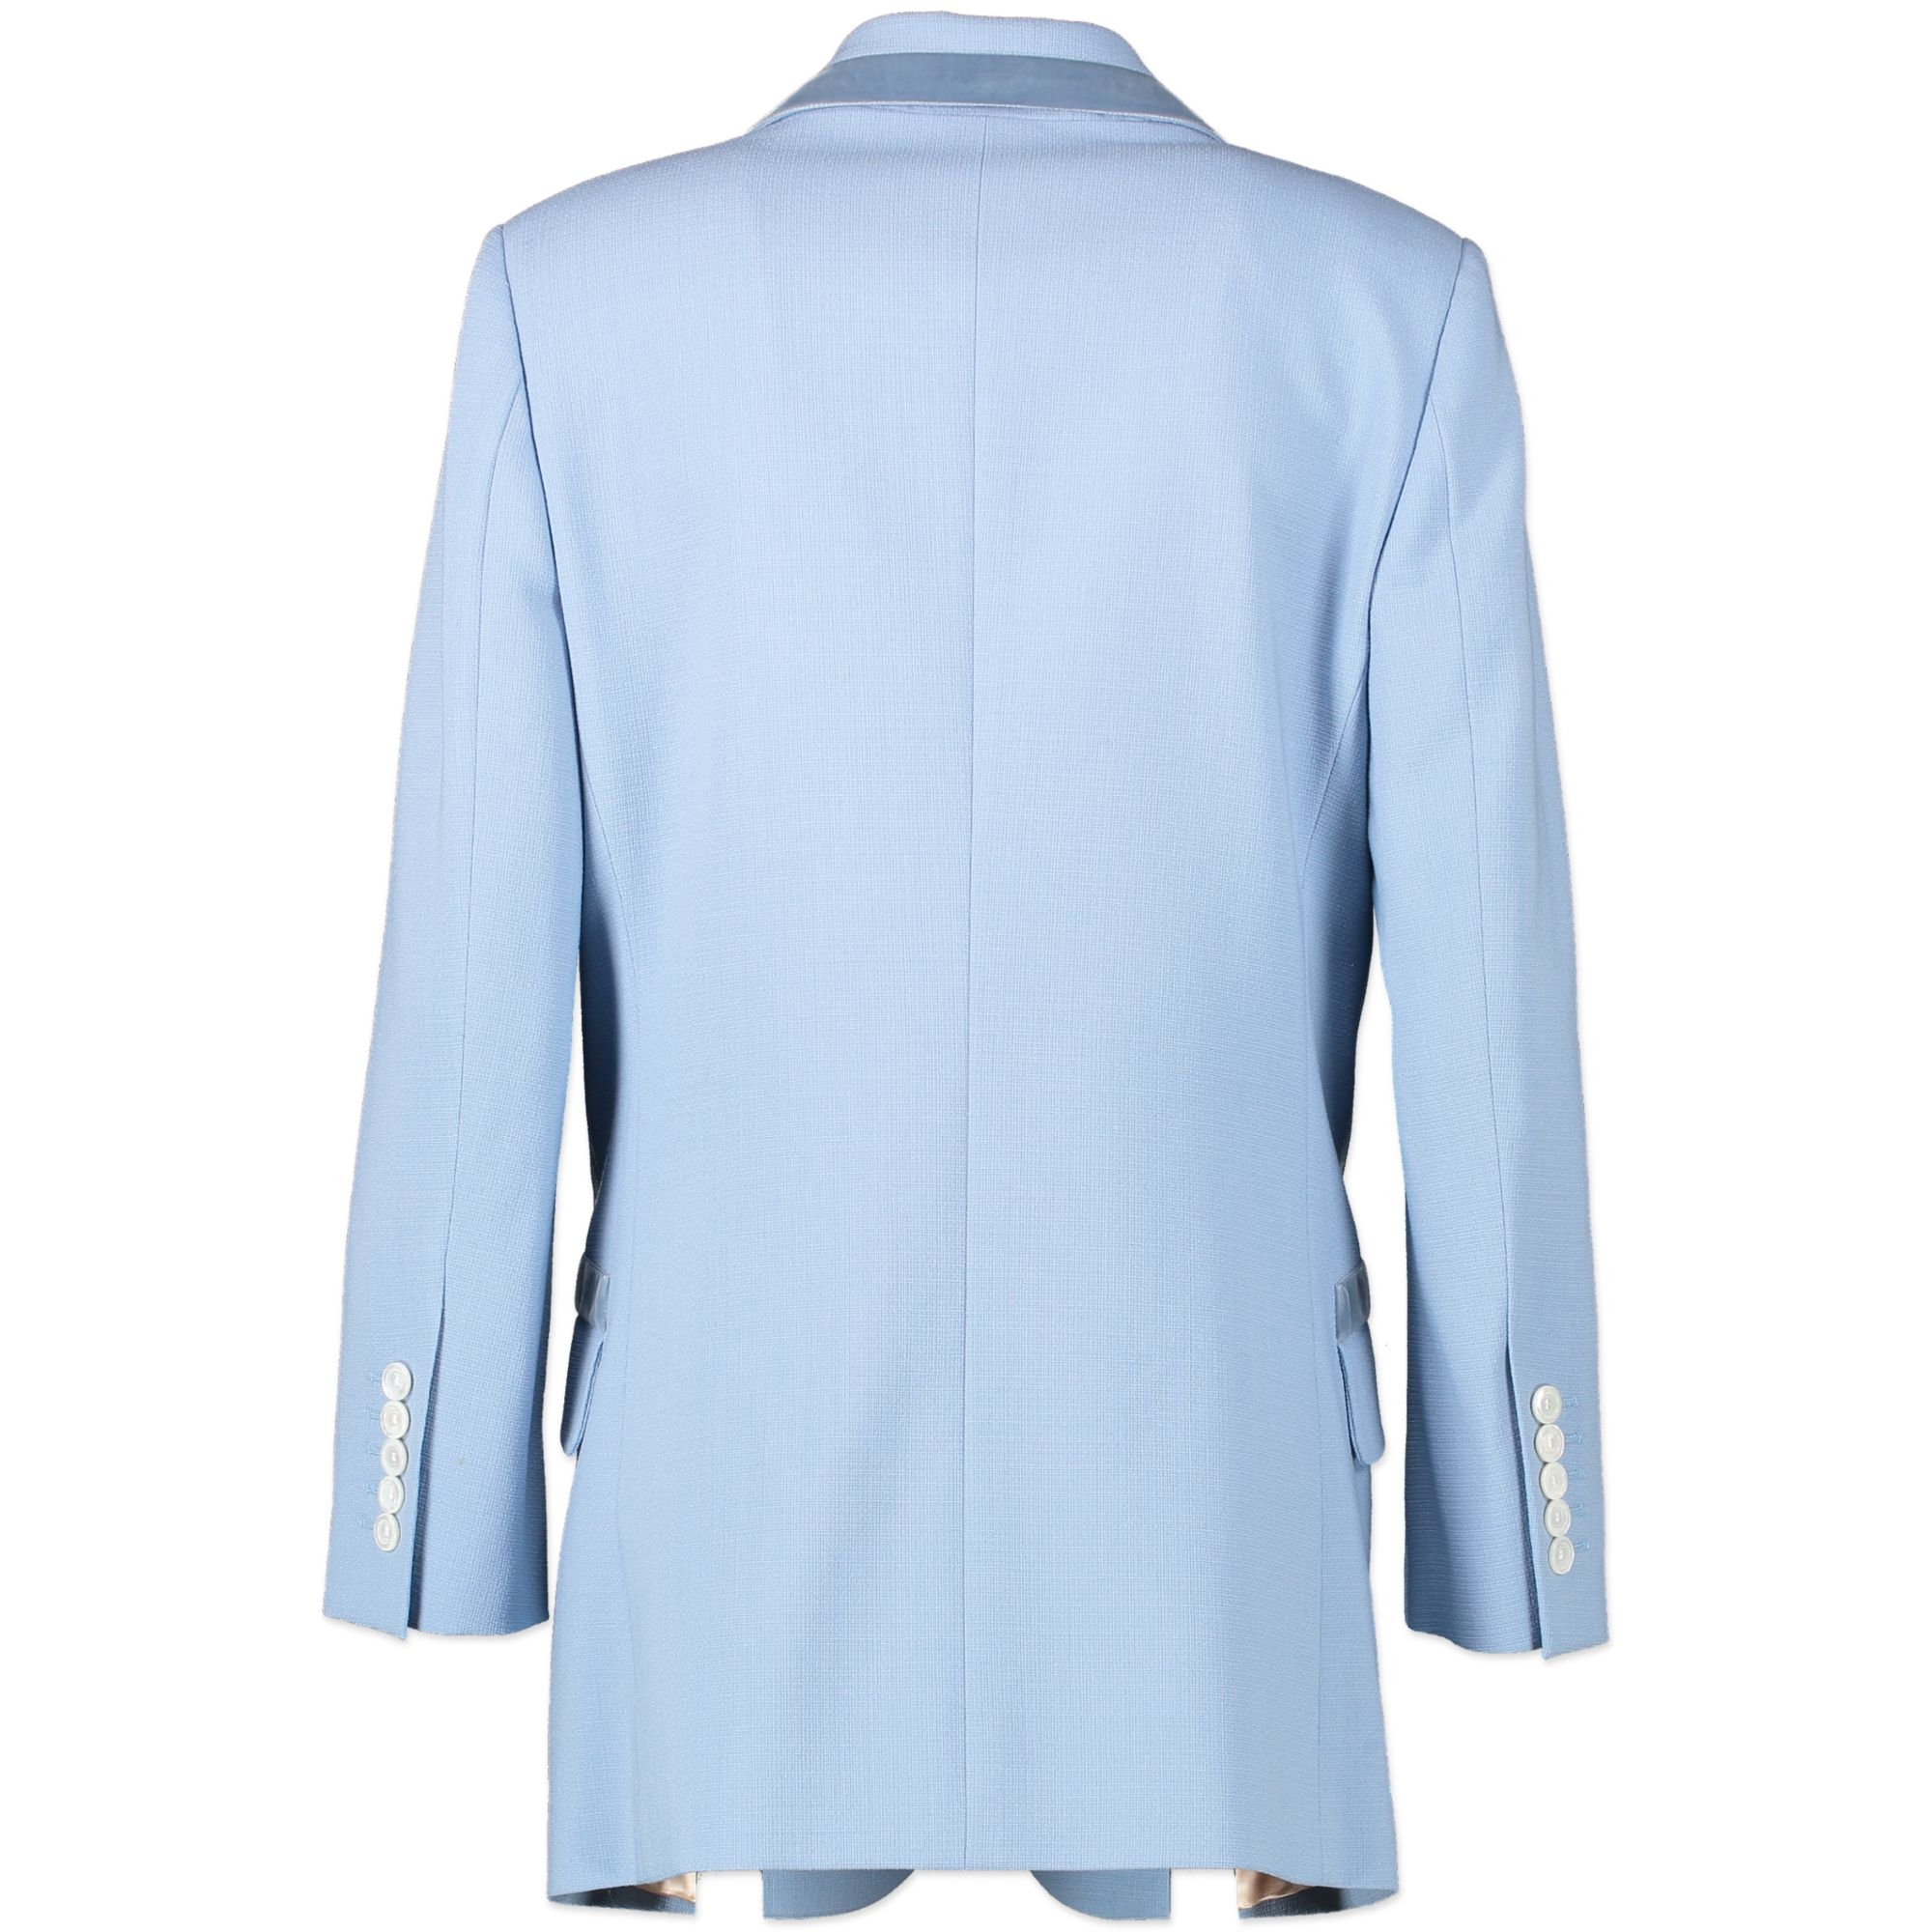 Gucci Blue Velvet Trimmed Wool Blazer - IT 40